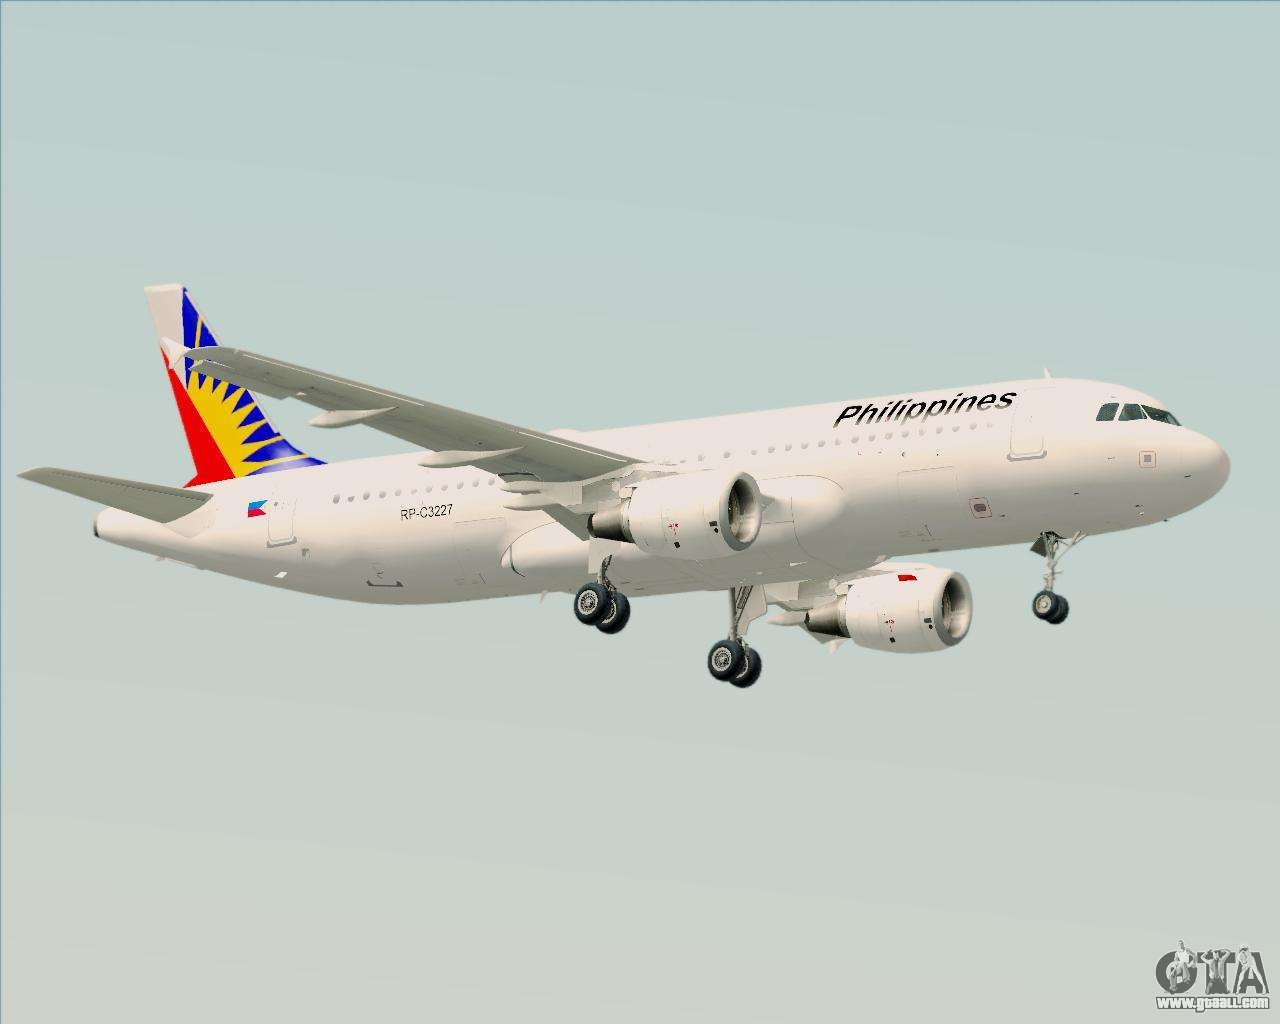 Philippine Airlines Airbus A320 Airbus A320-200 Philippines